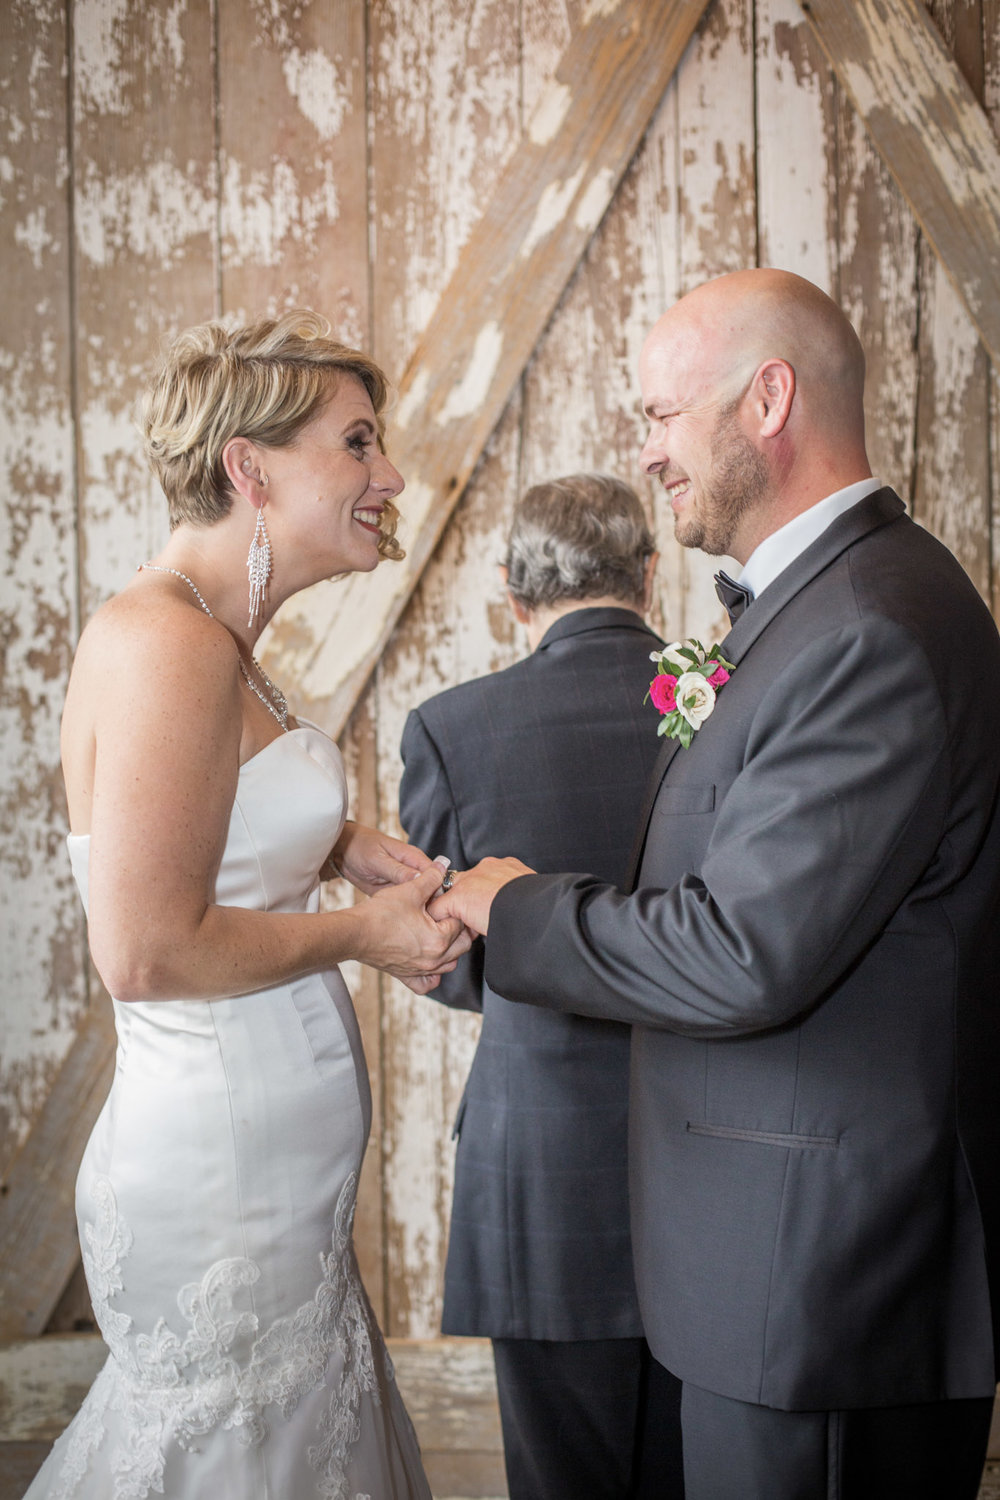 Kansas+City-Small+Wedding-Elope_Intimate_Ceremony_Melanie+David-7.jpg